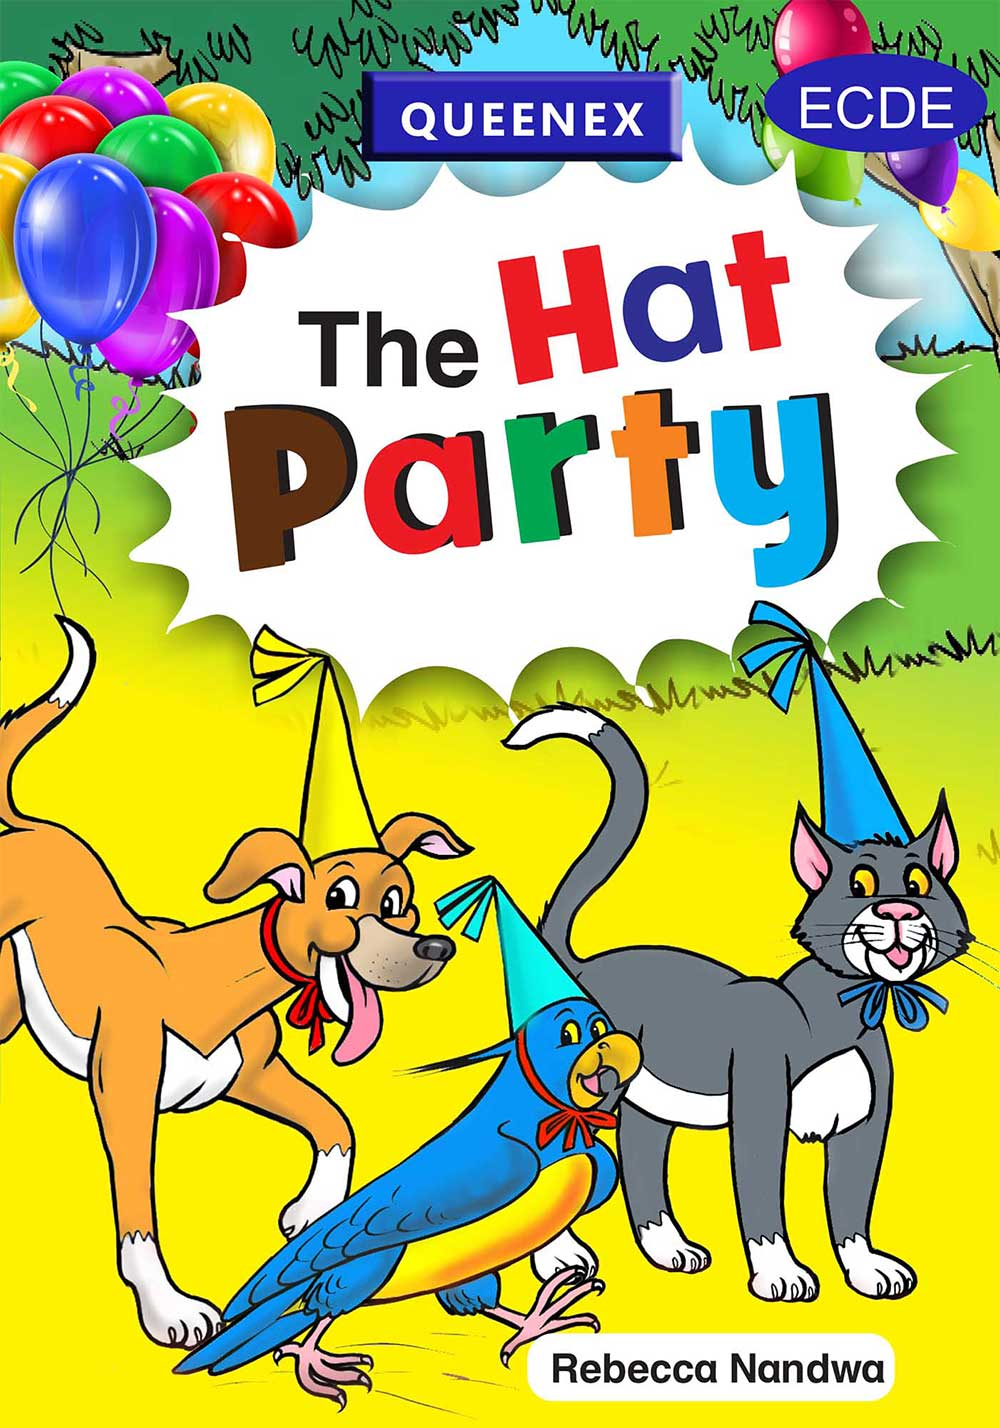 The Hat Party Queenex Readers 3 - 6 years